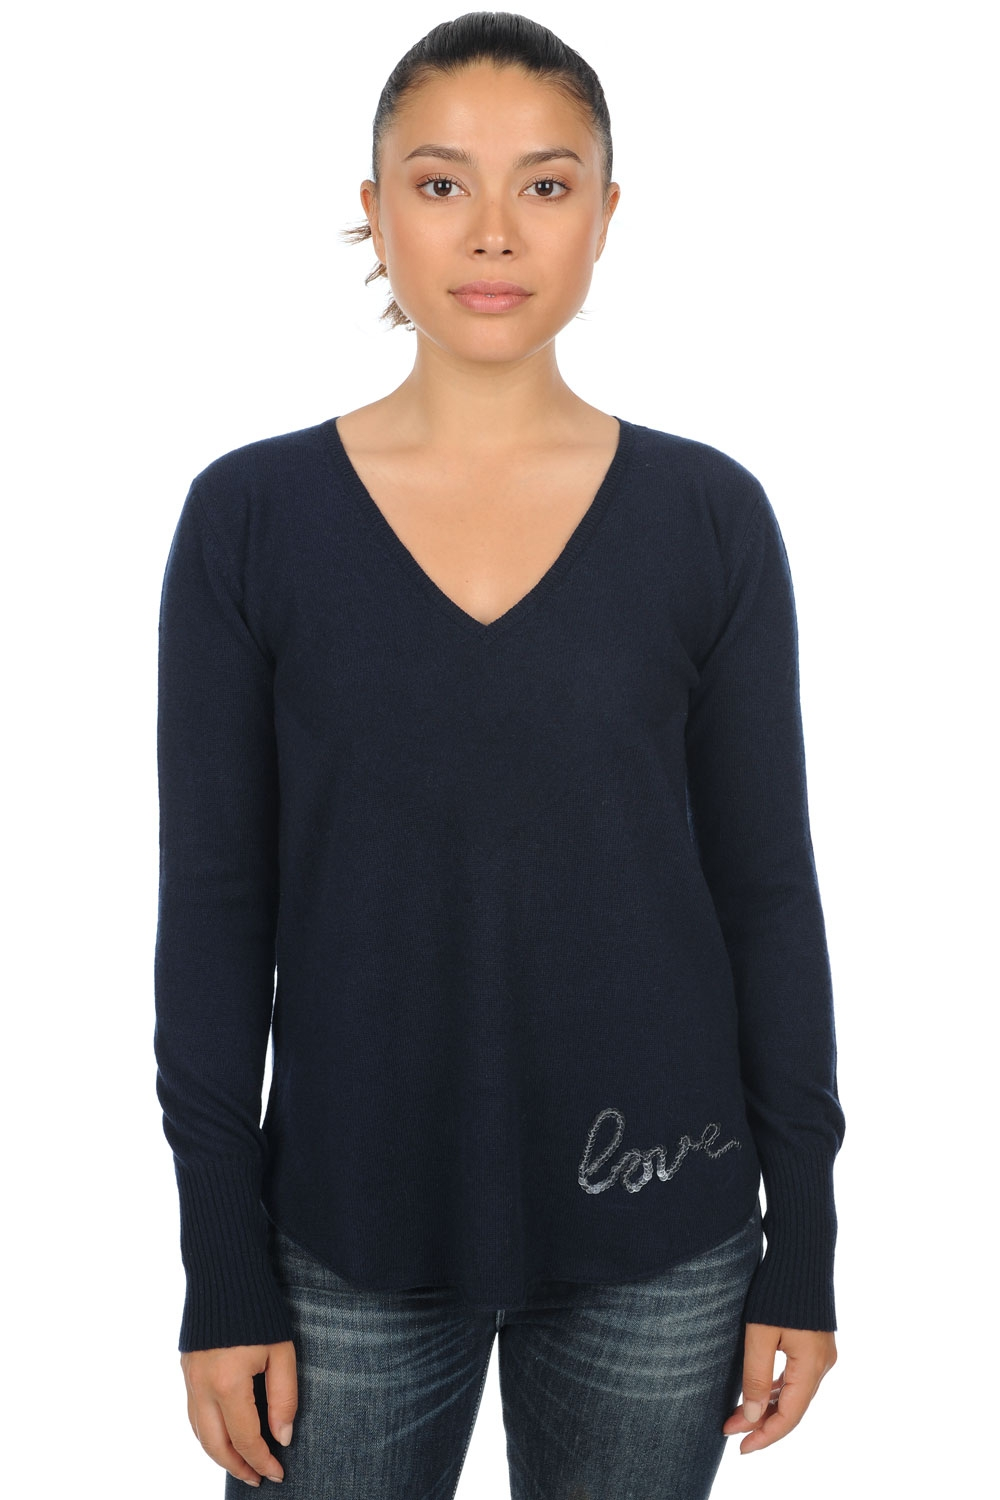 cachemire pull femme col v aenor marine fonce xs